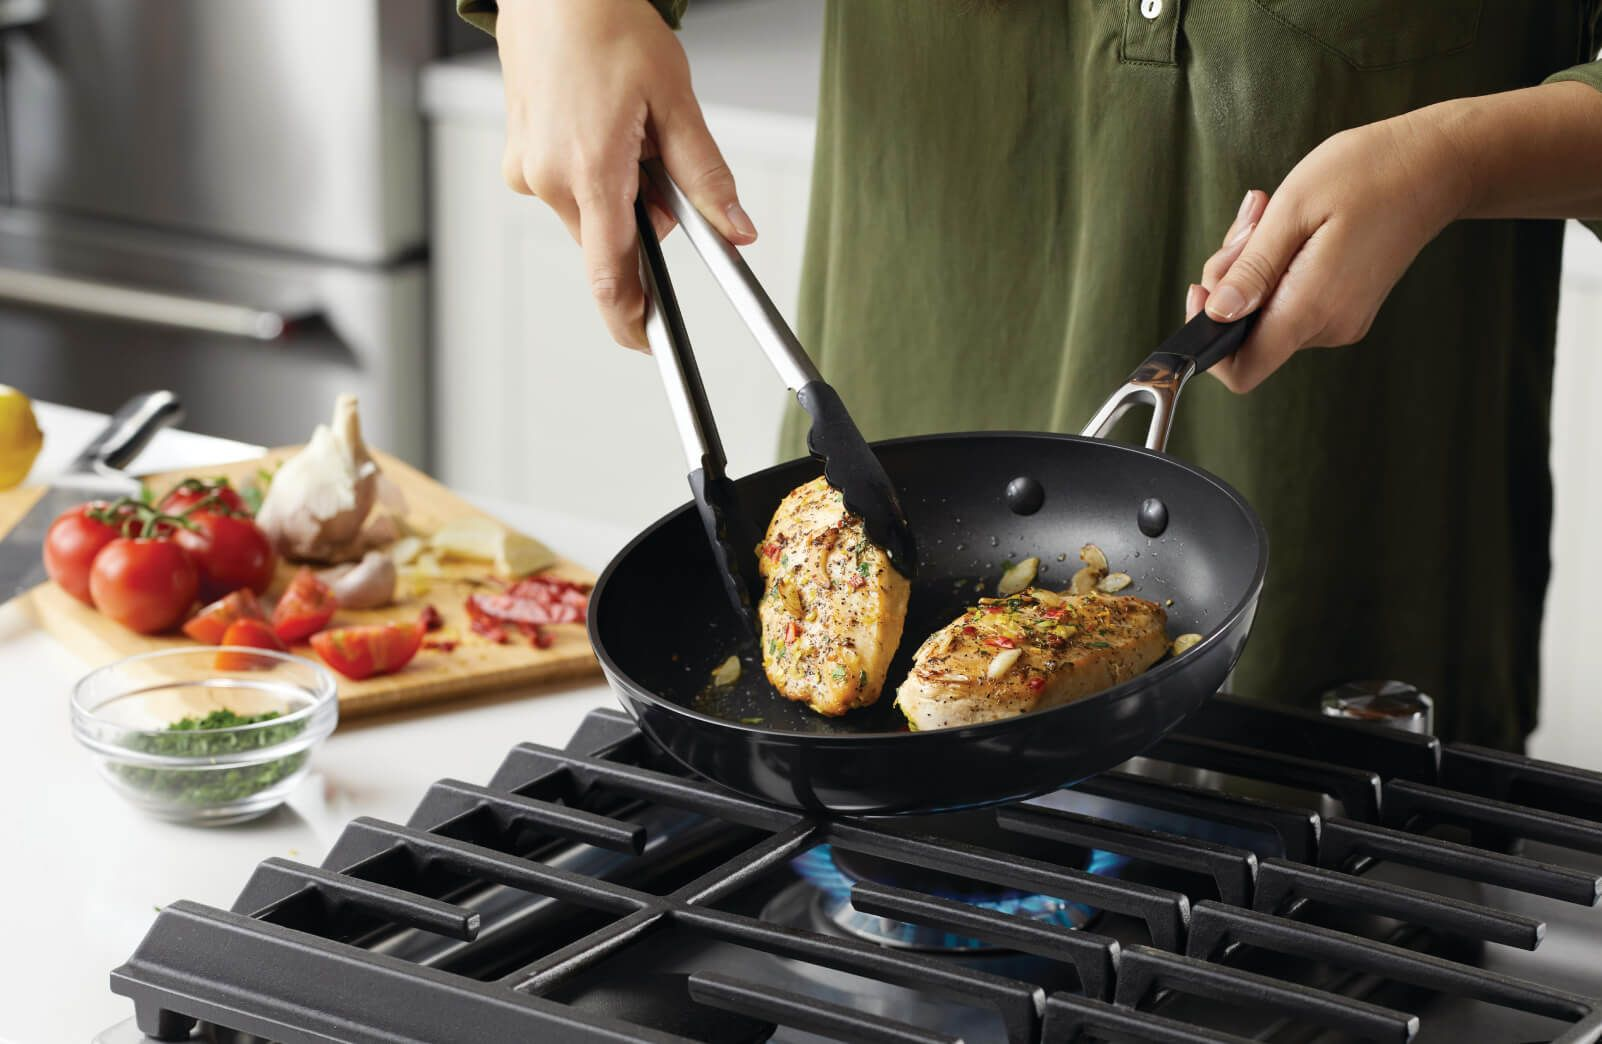 A person cooking with hard-anodized pans.